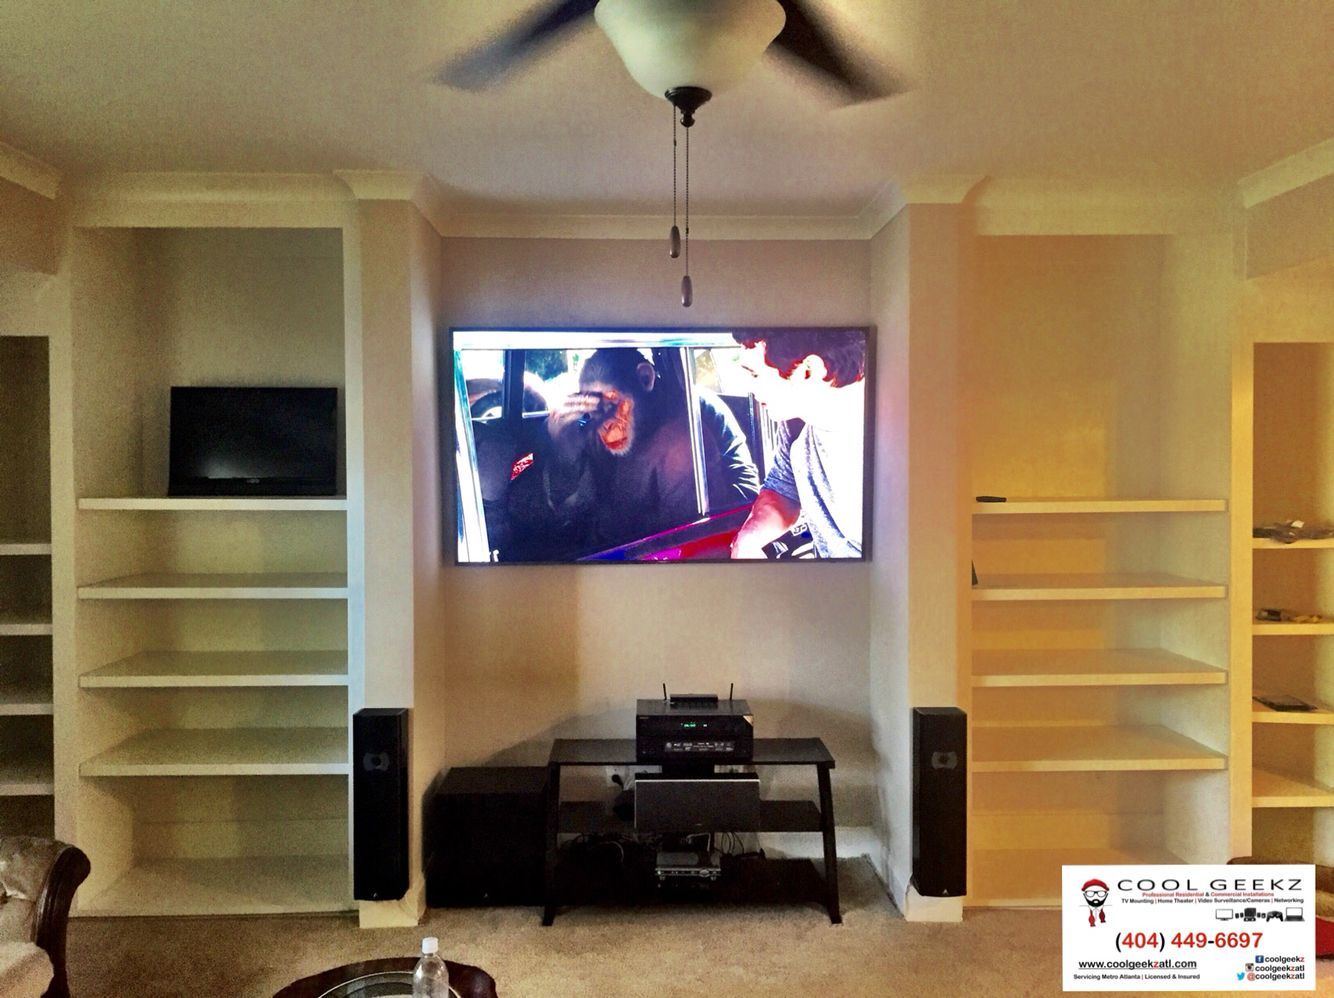 small resolution of full home theater setup done 75 4k tv onkyo receiver atlantic tech speakers and a monster subwoofer